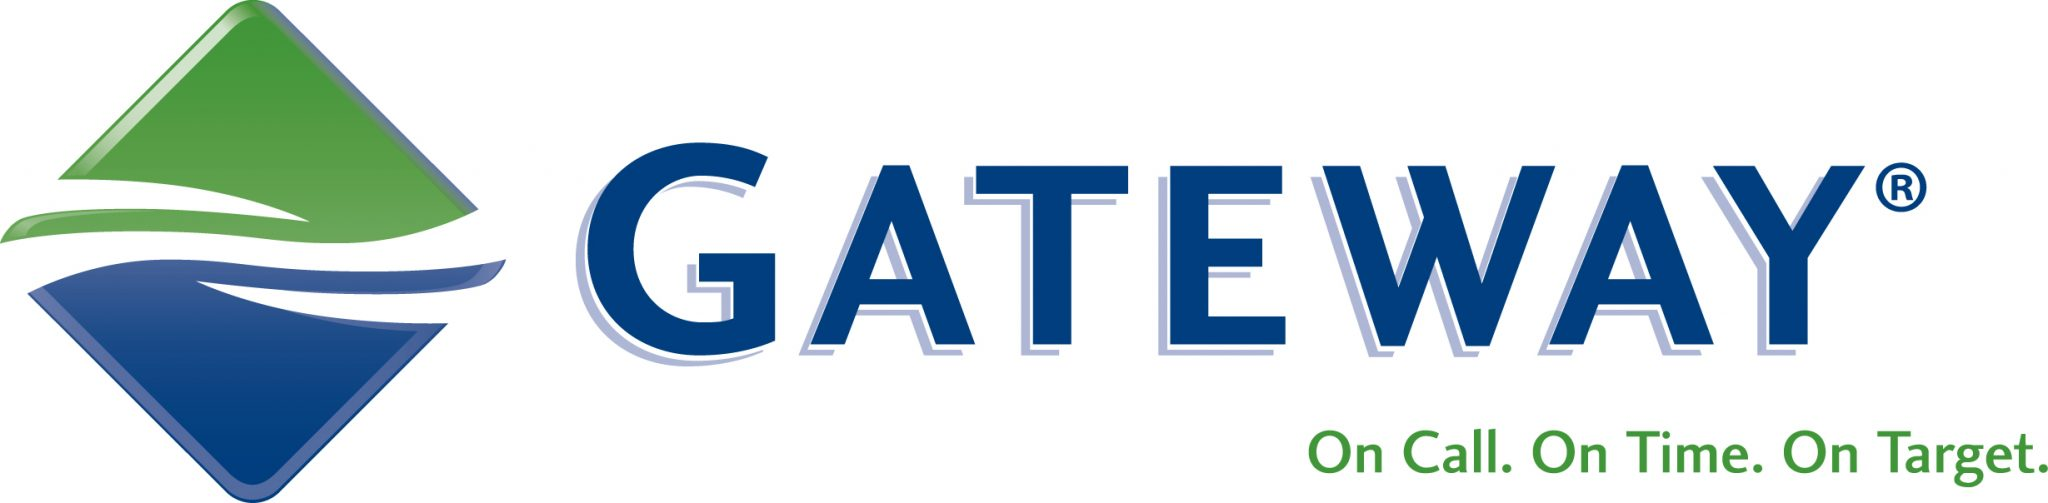 Gateway Colored Logo